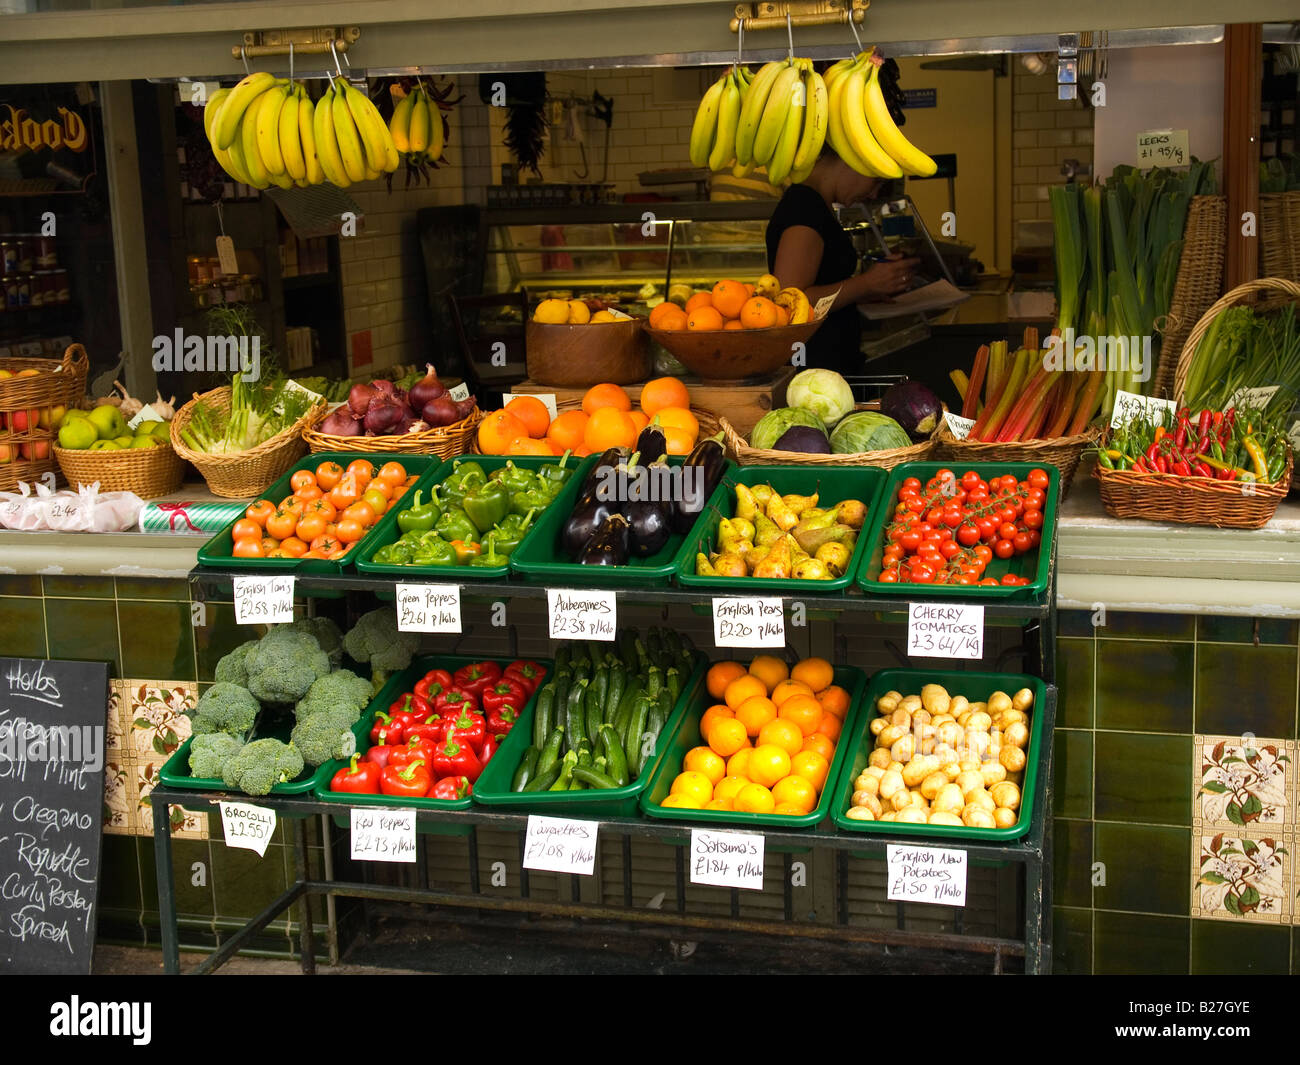 An Attractive Display Of Fruit And Vegetables In A Shop In